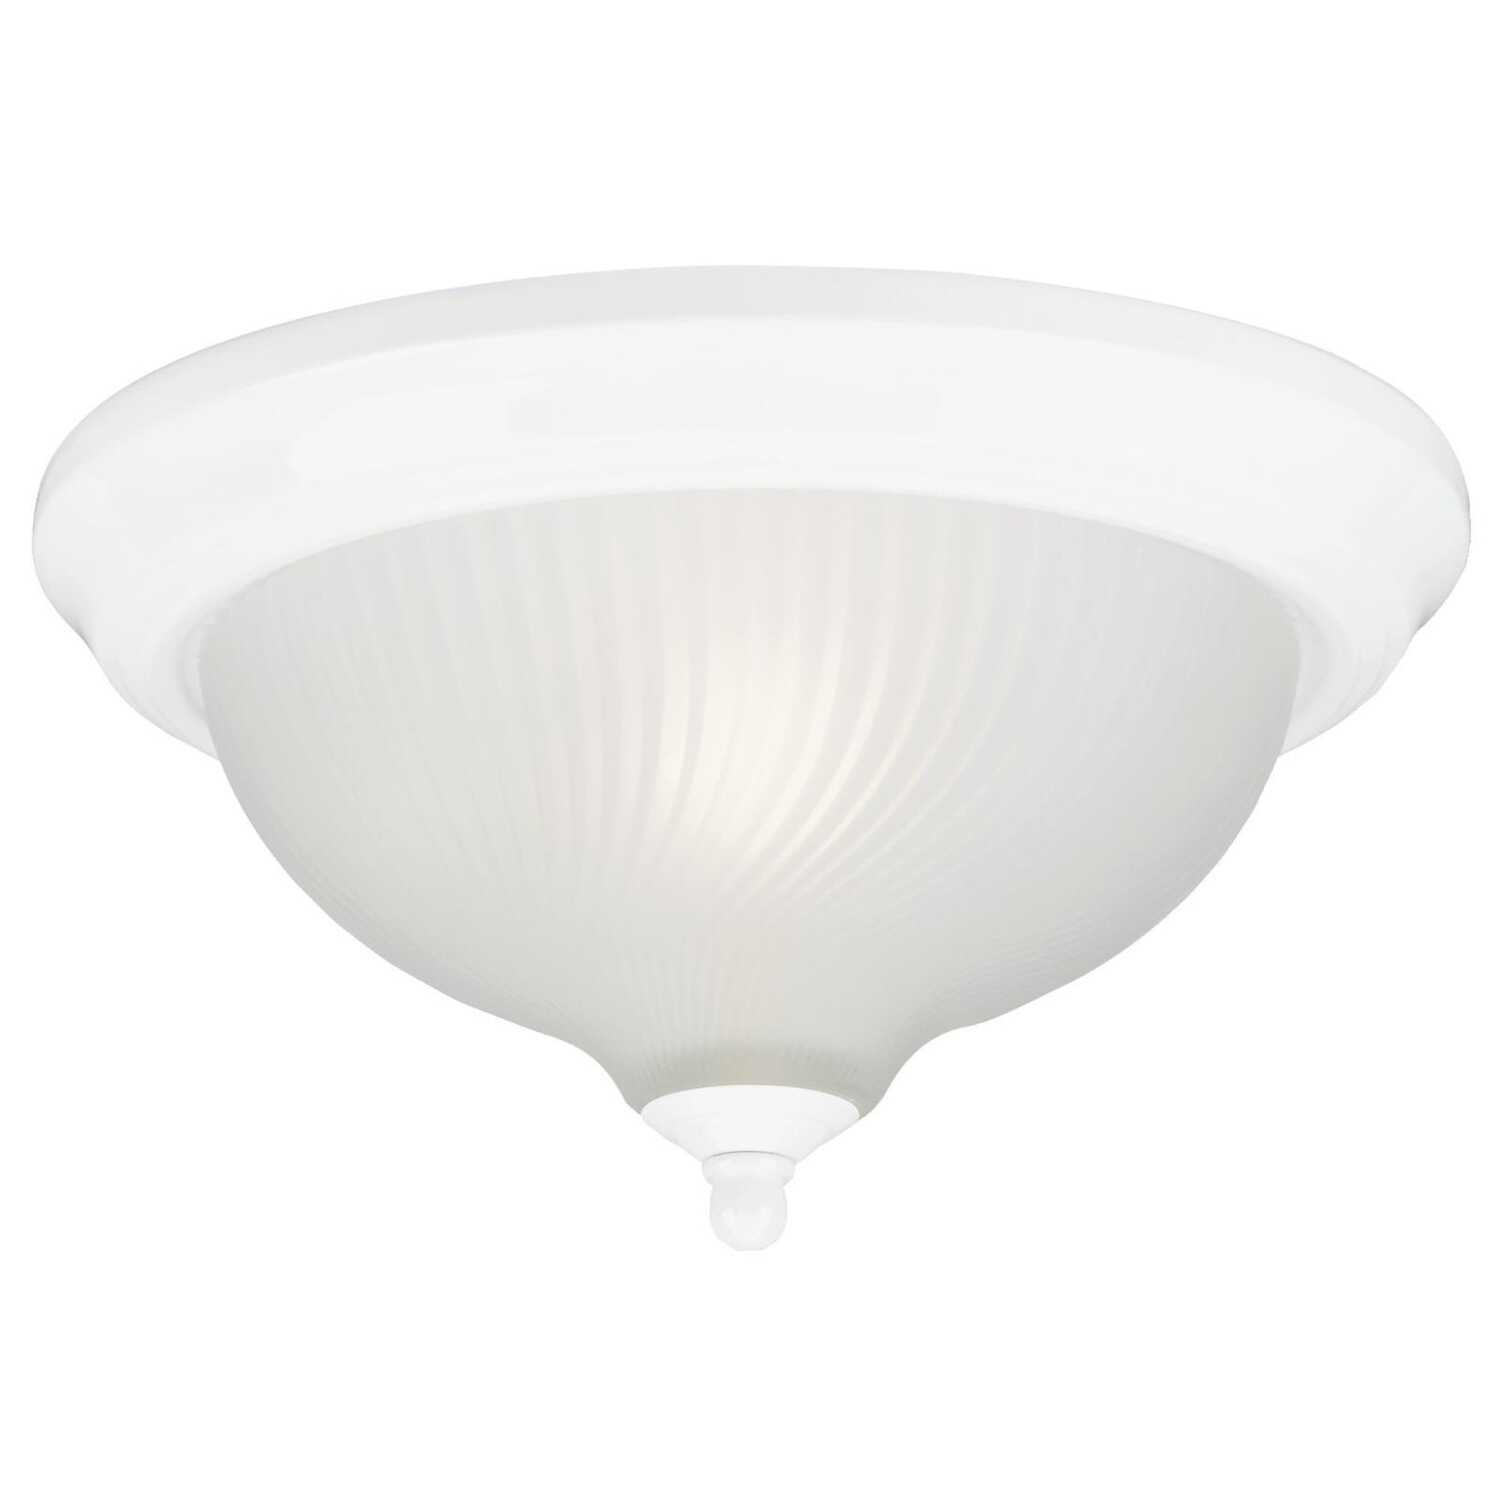 Westinghouse  5-7/8 in. H x 11 in. W x 11.8 in. L Ceiling Light